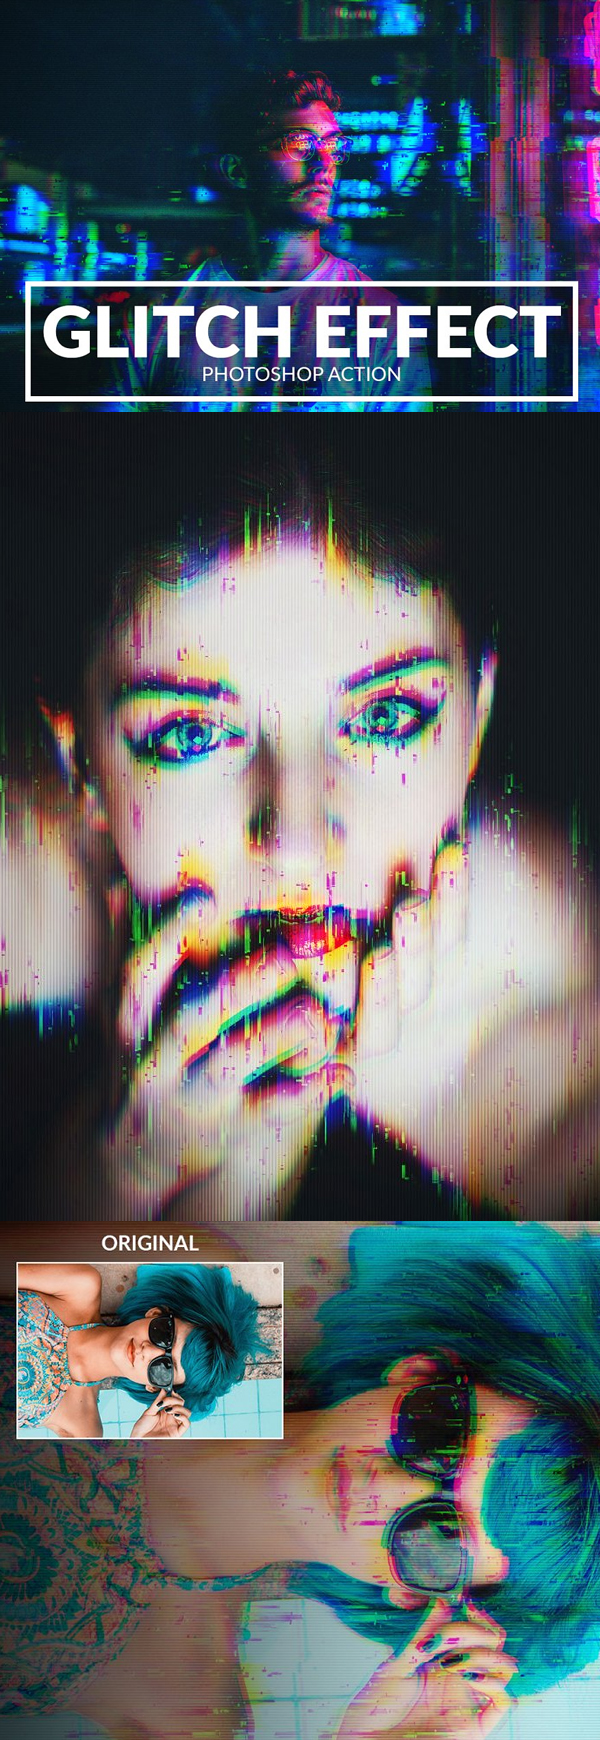 Glitch Effect Photoshop Action